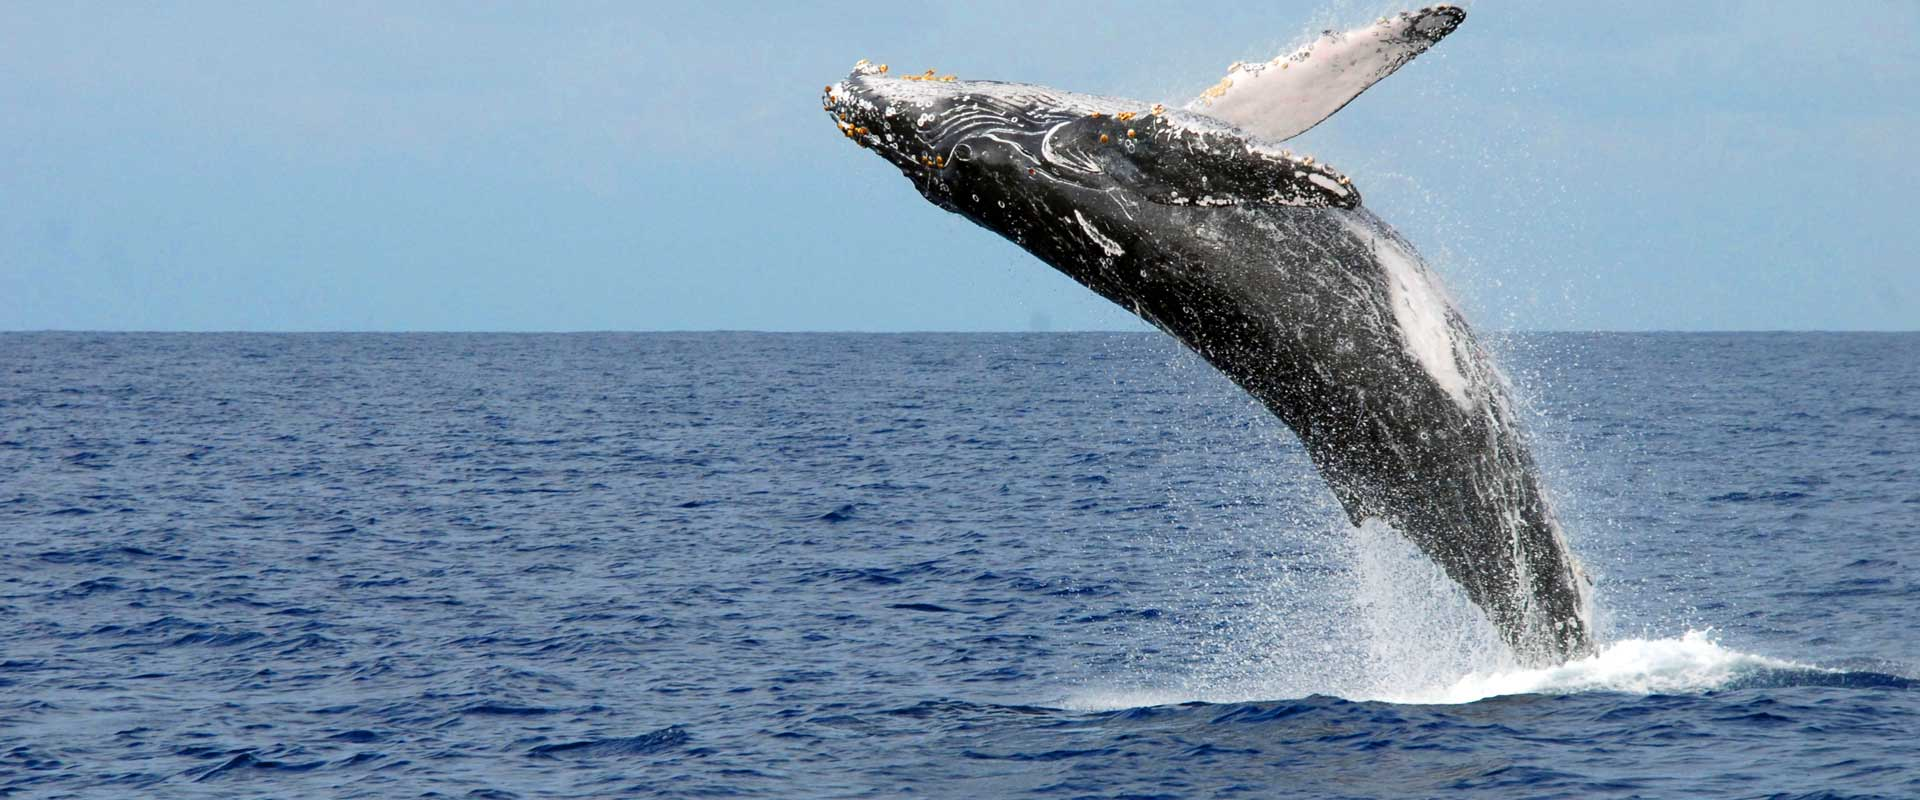 Whale Watching, Extremely popular during their season in Hawaii